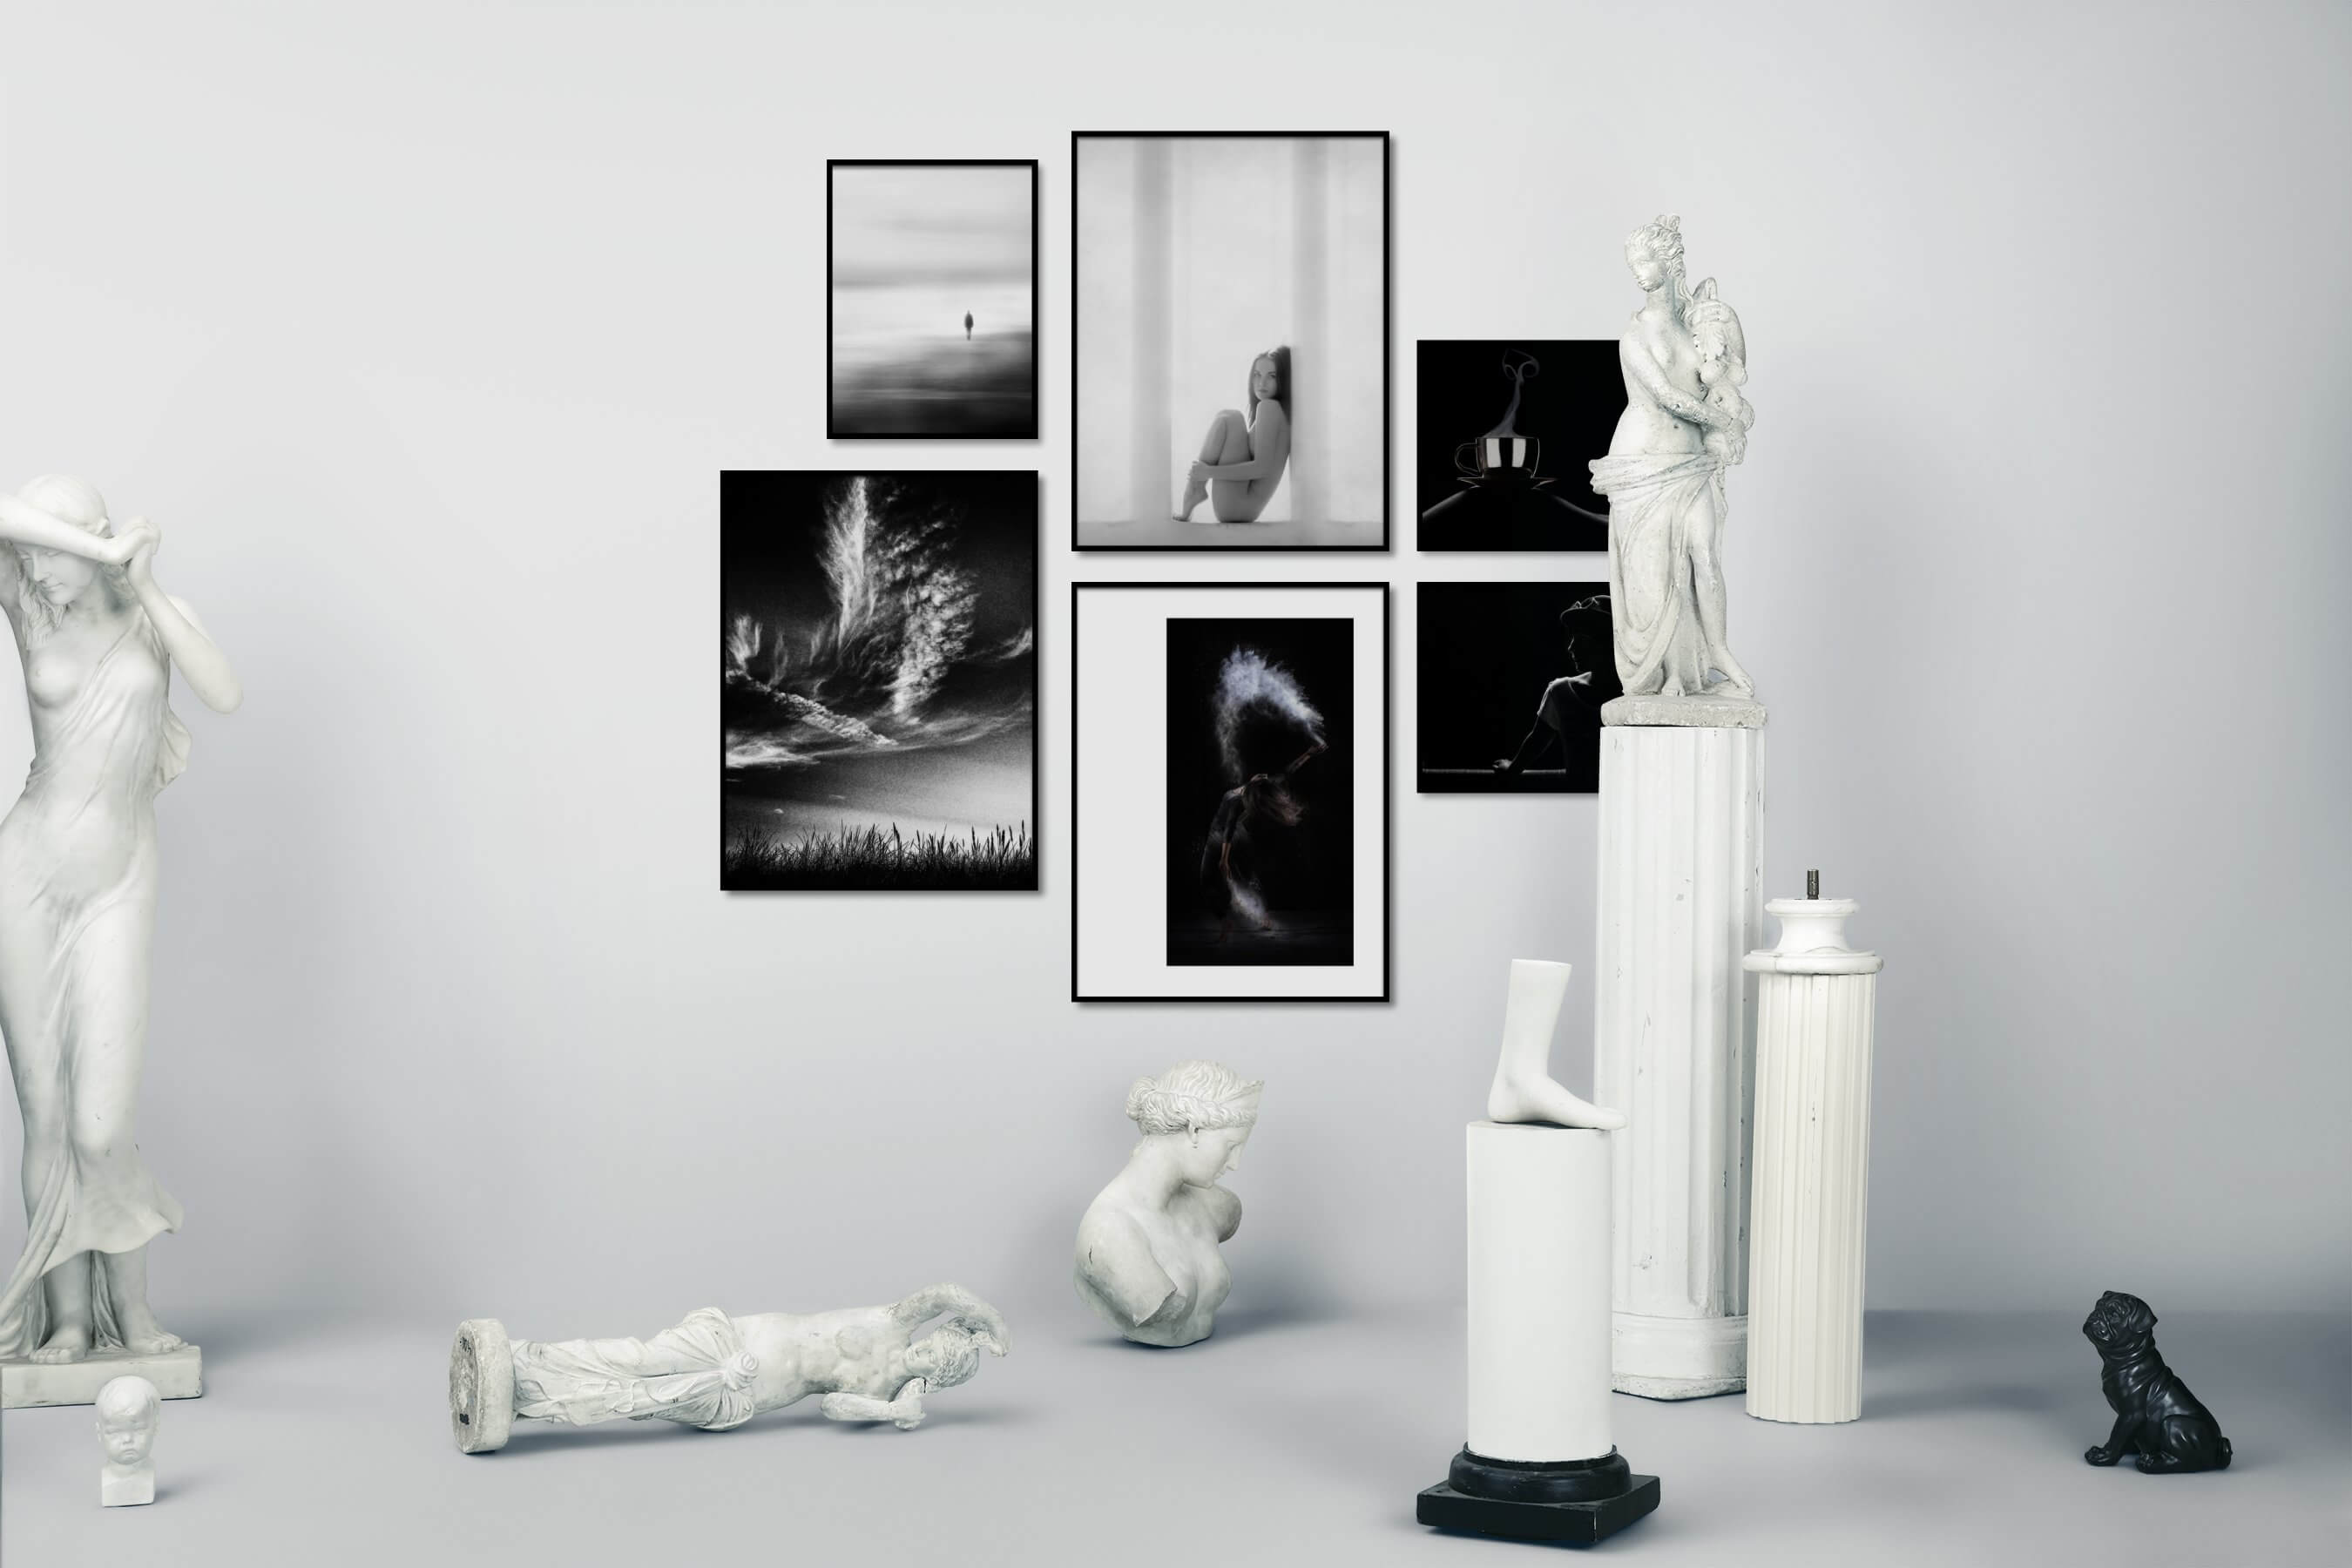 Gallery wall idea with six framed pictures arranged on a wall depicting Black & White, For the Minimalist, Fashion & Beauty, Nature, For the Moderate, Mindfulness, and Dark Tones